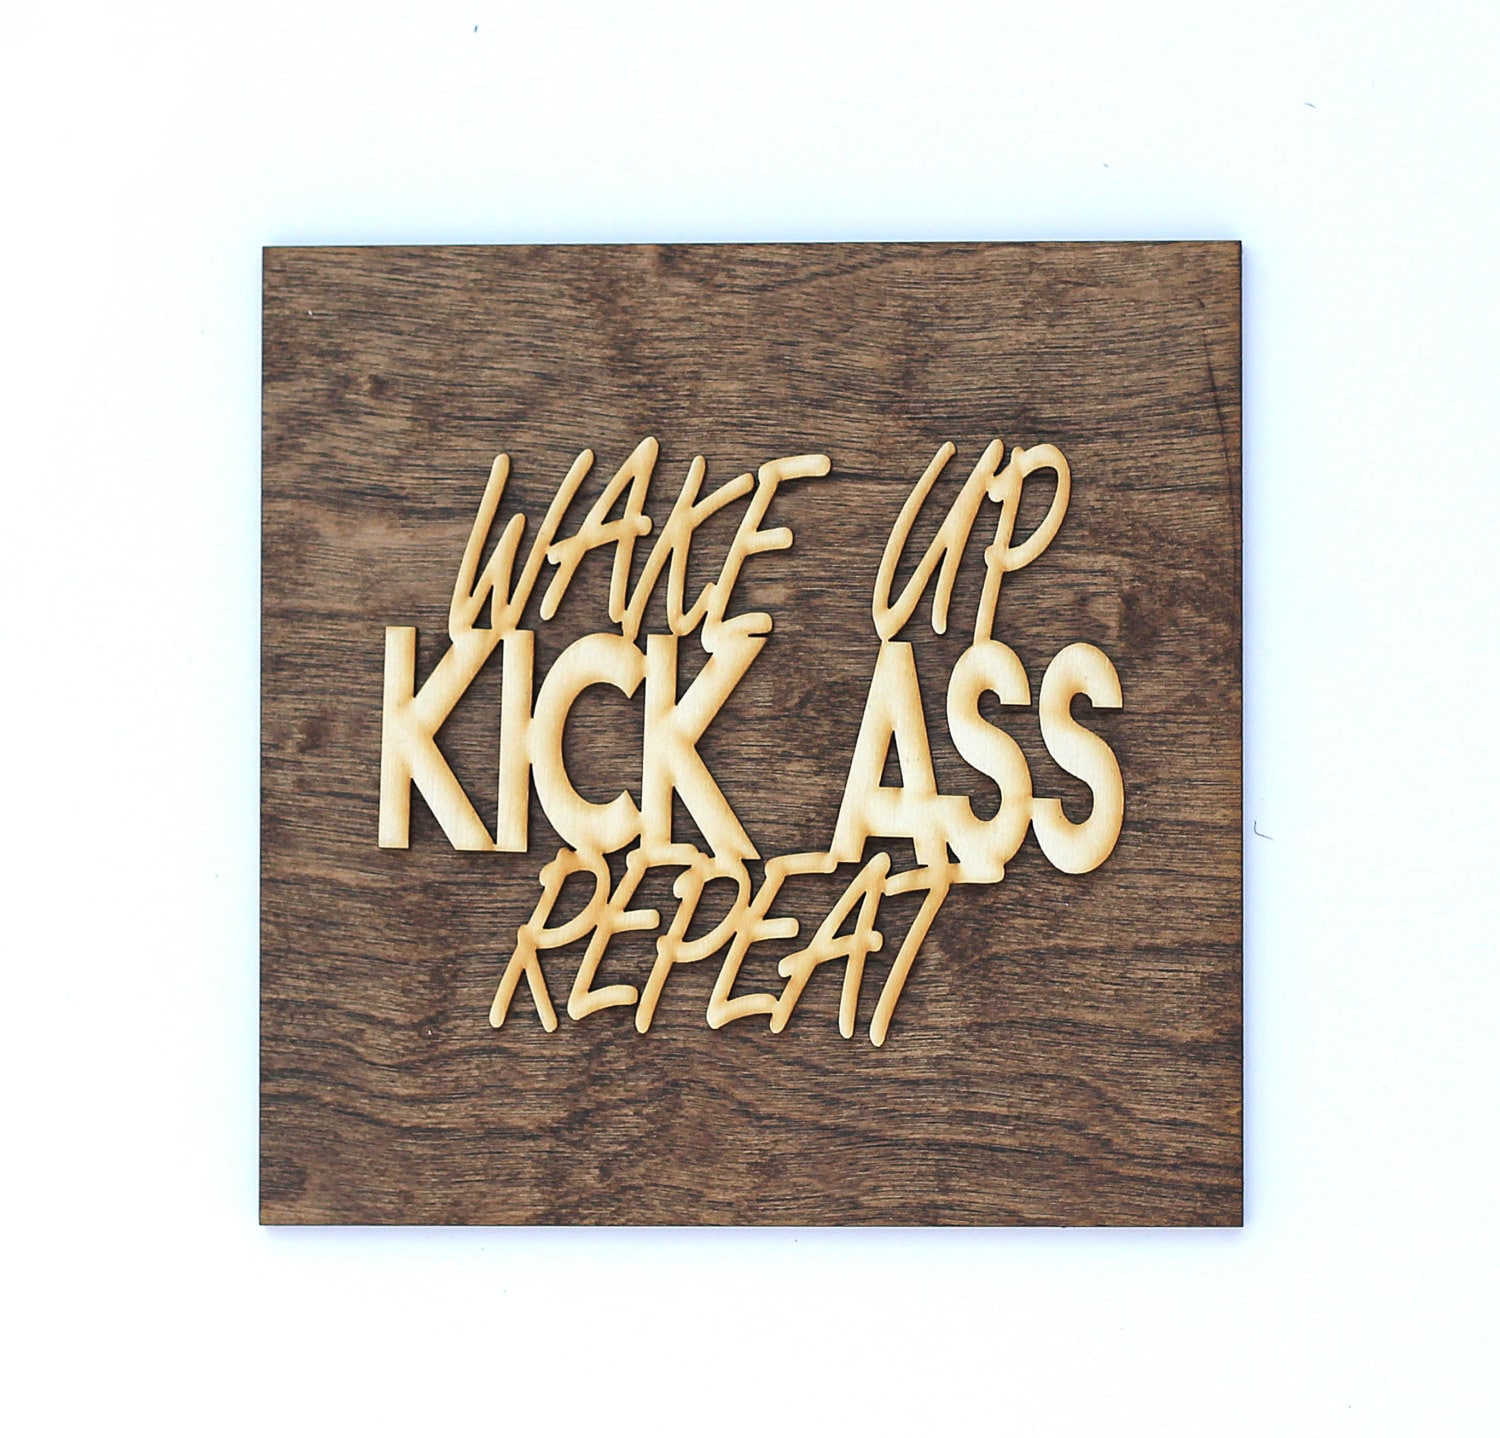 Bathroom wall decor quotes - Wake Up Kick Ass Motivational Sign Inspirational Wall Art Laser Cut Wood Sign Home Office Decor Motivational Quote Gifts For Her